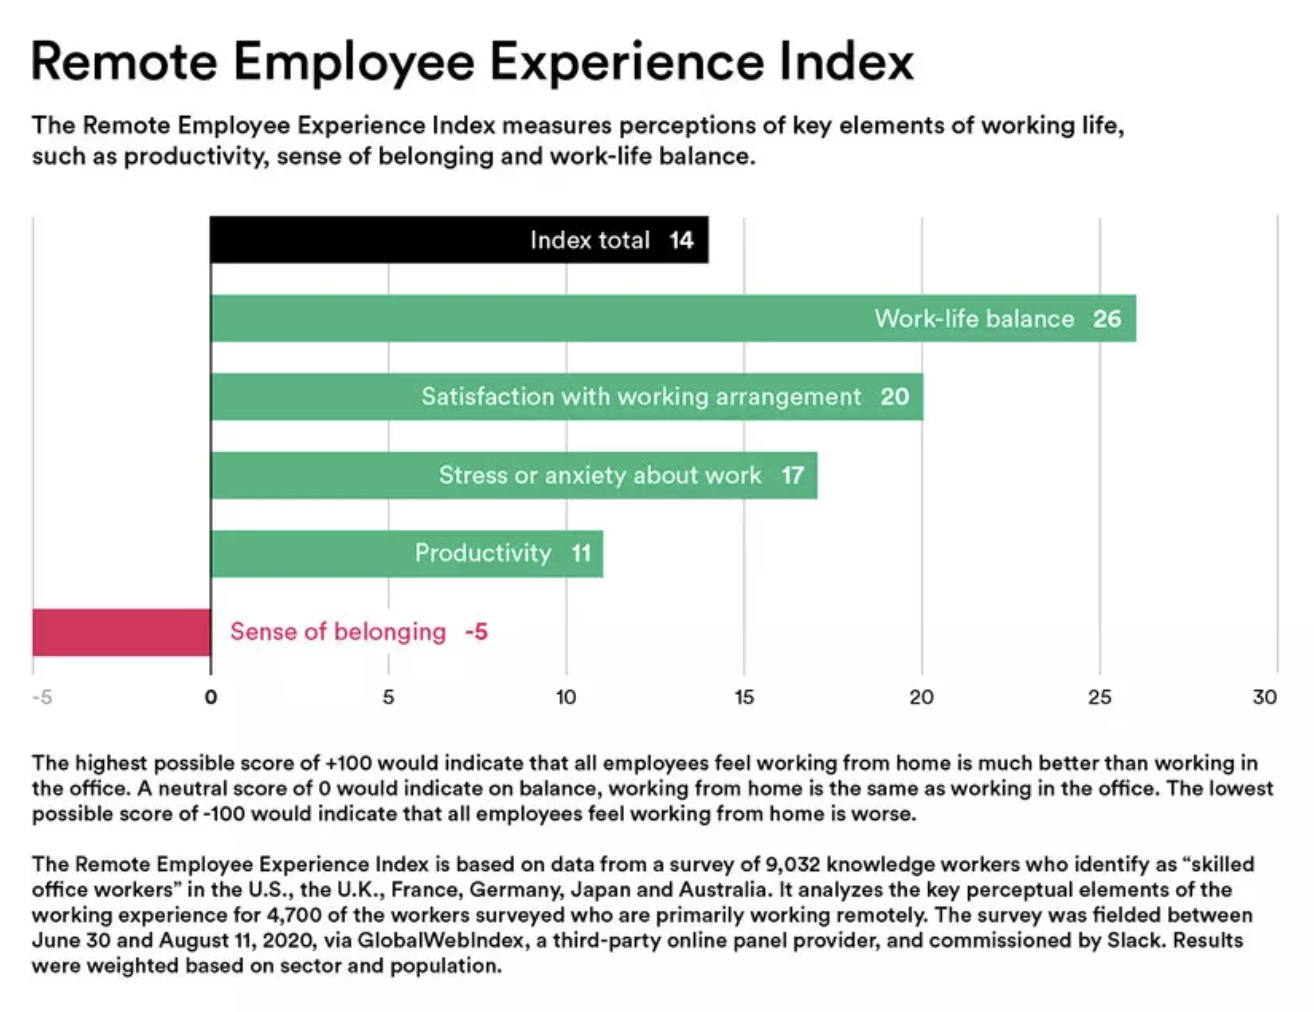 The index is based on data from a survey of 9,032 knowledge workers who identify themselves as